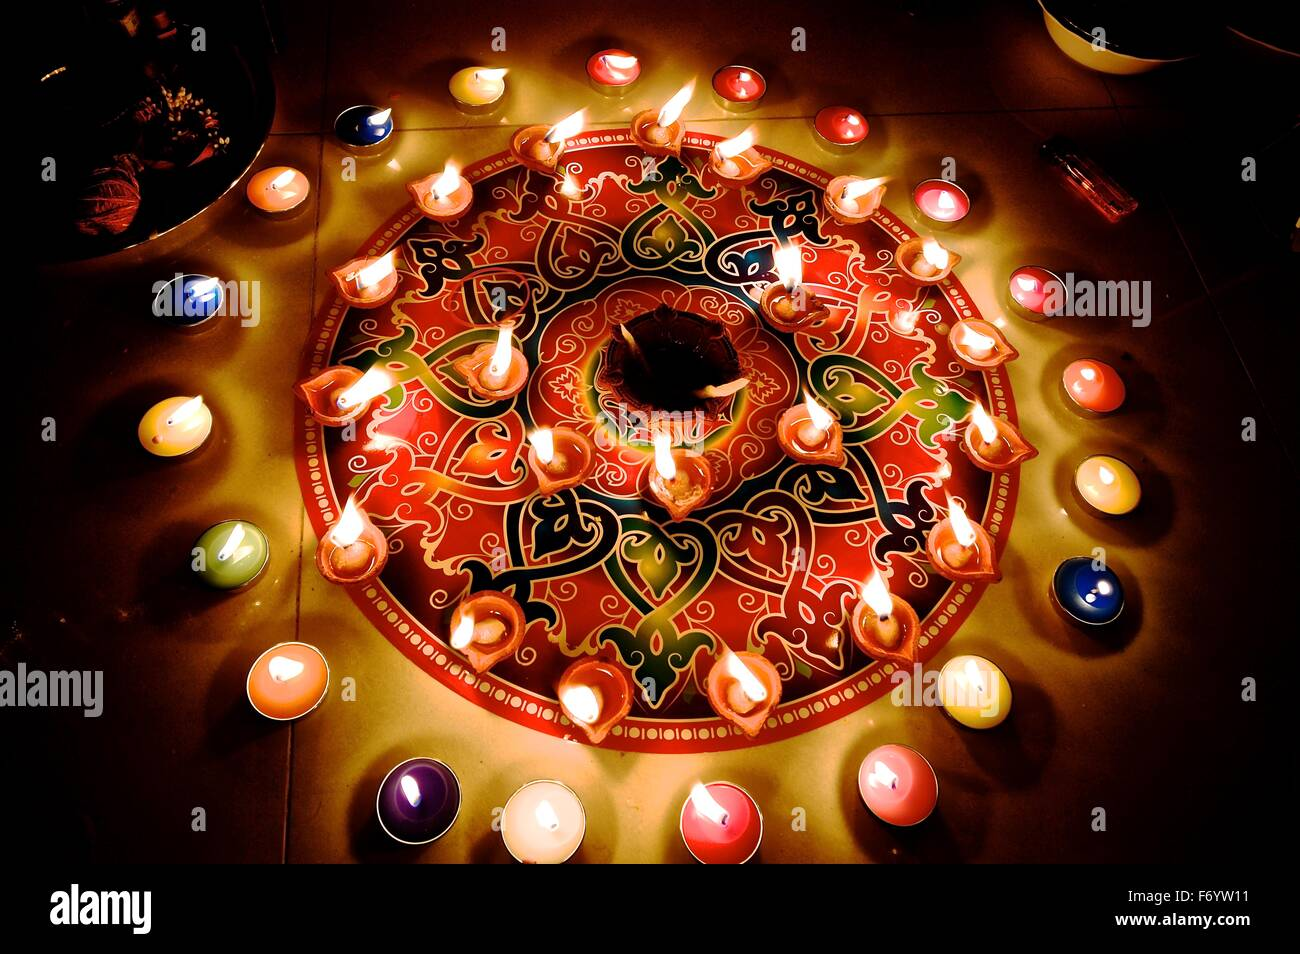 how to make candle at home in hindi